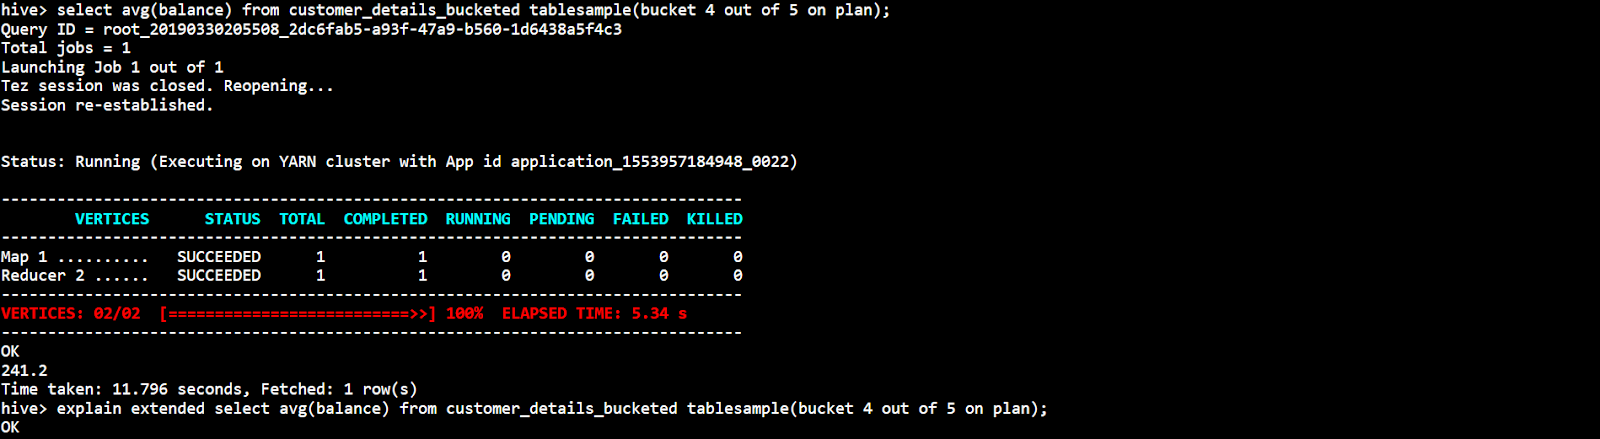 Bucketing in Hive : Querying from a particular bucket